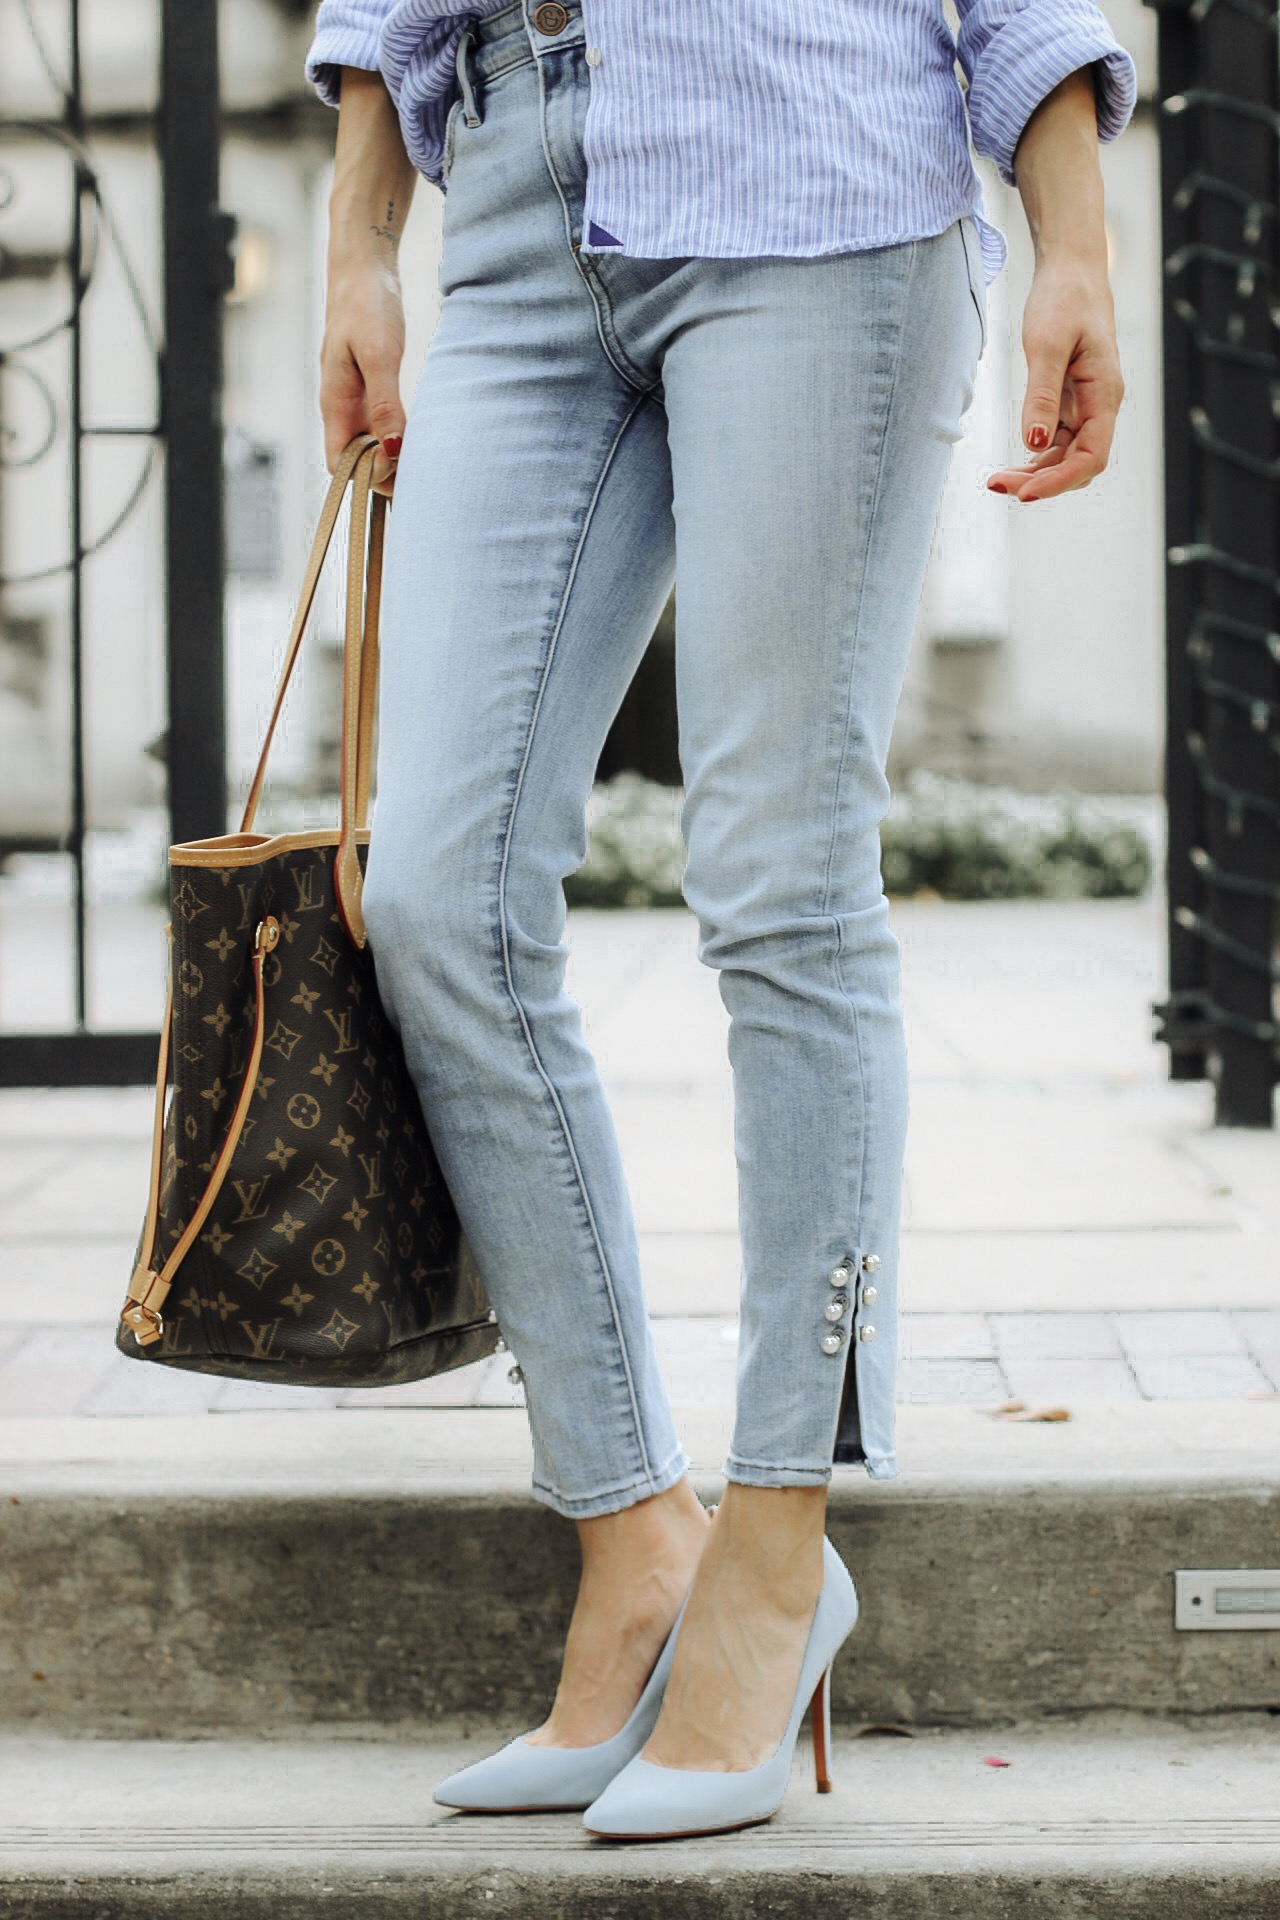 details of embellished jeans and untucked shirt